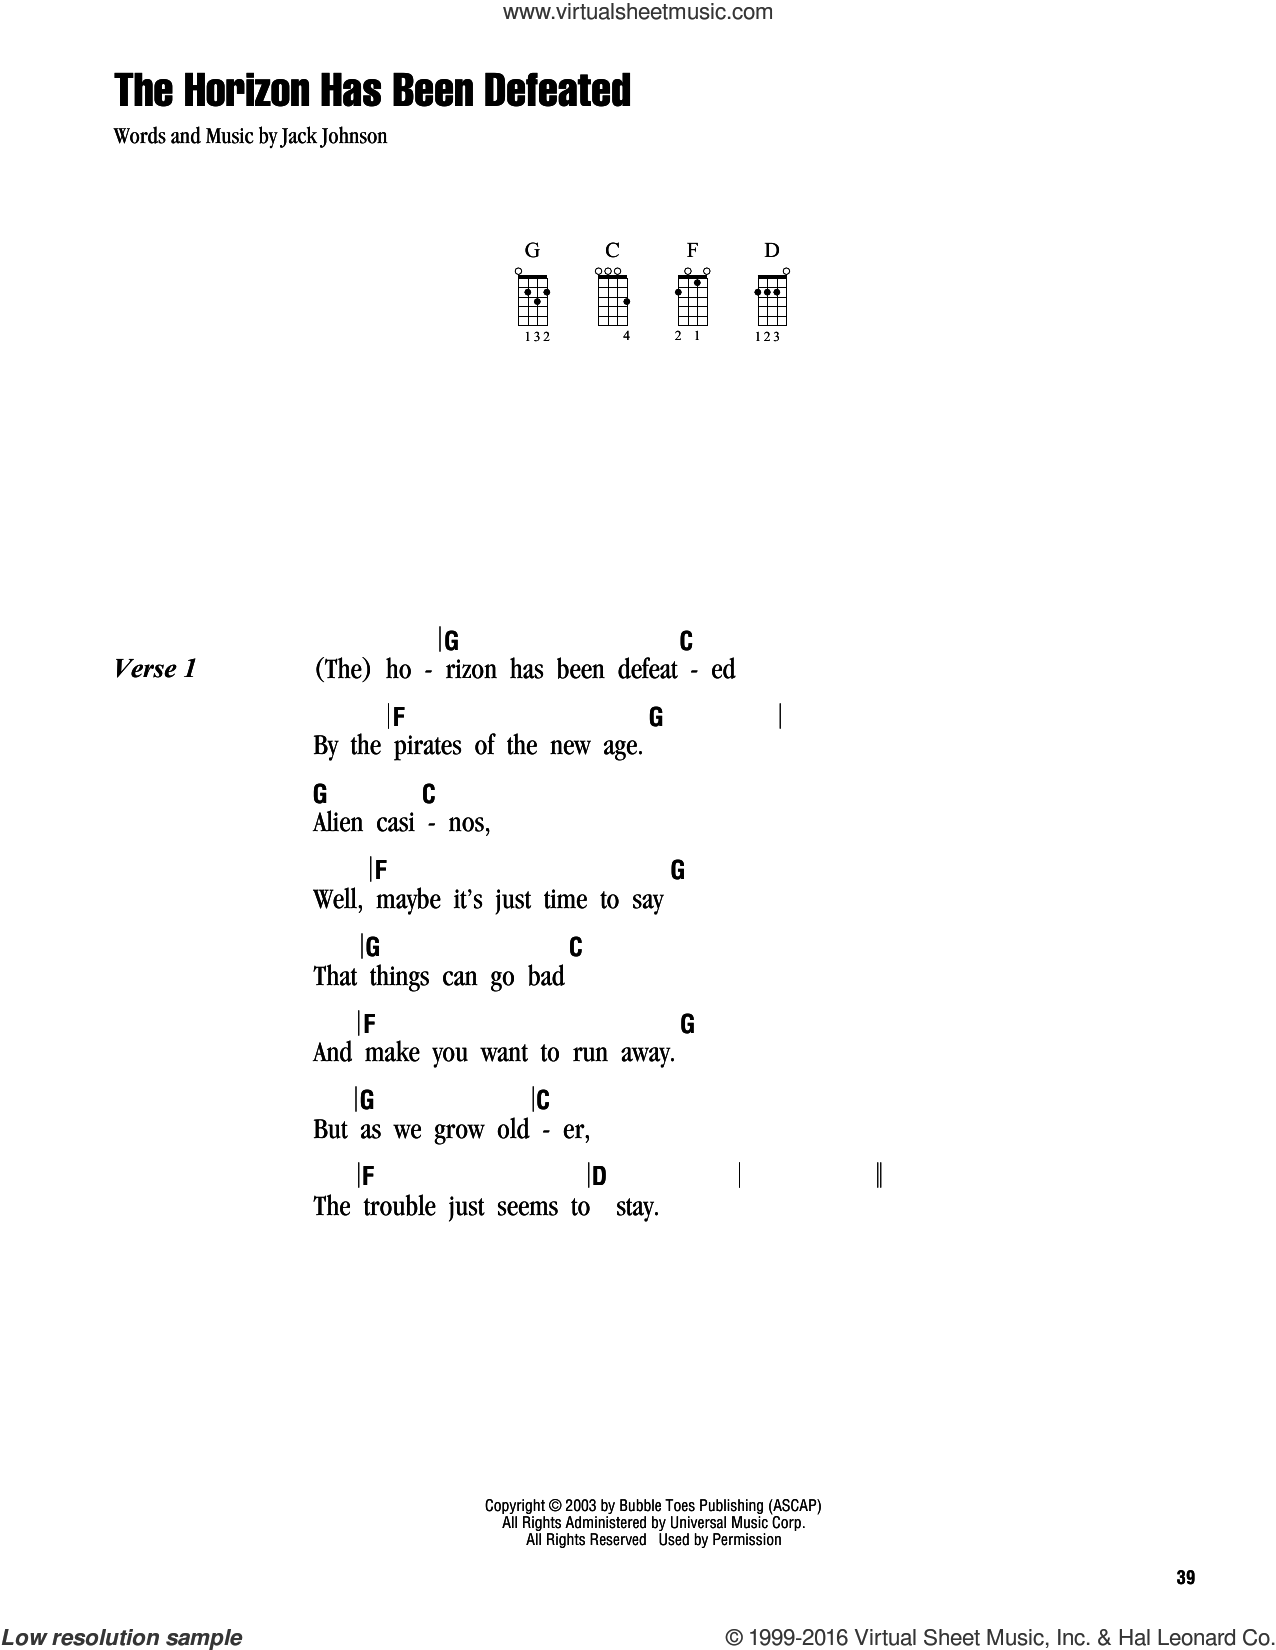 The Horizon Has Been Defeated sheet music for ukulele (chords) by Jack Johnson, intermediate